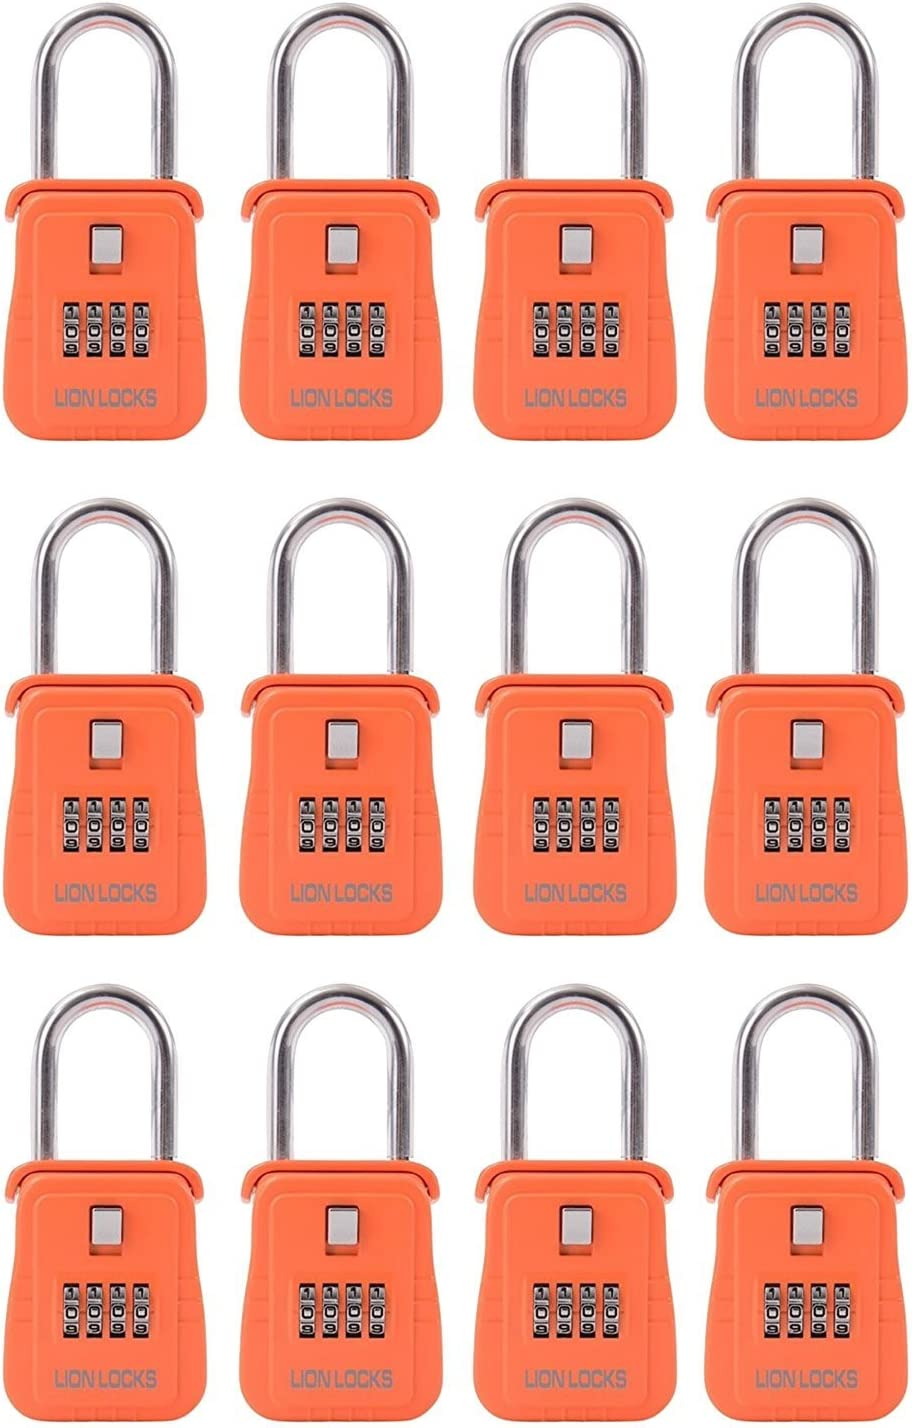 Lion Locks 1500 Key Storage Realtor Lock Box with Combination, 12 Pack, Orange